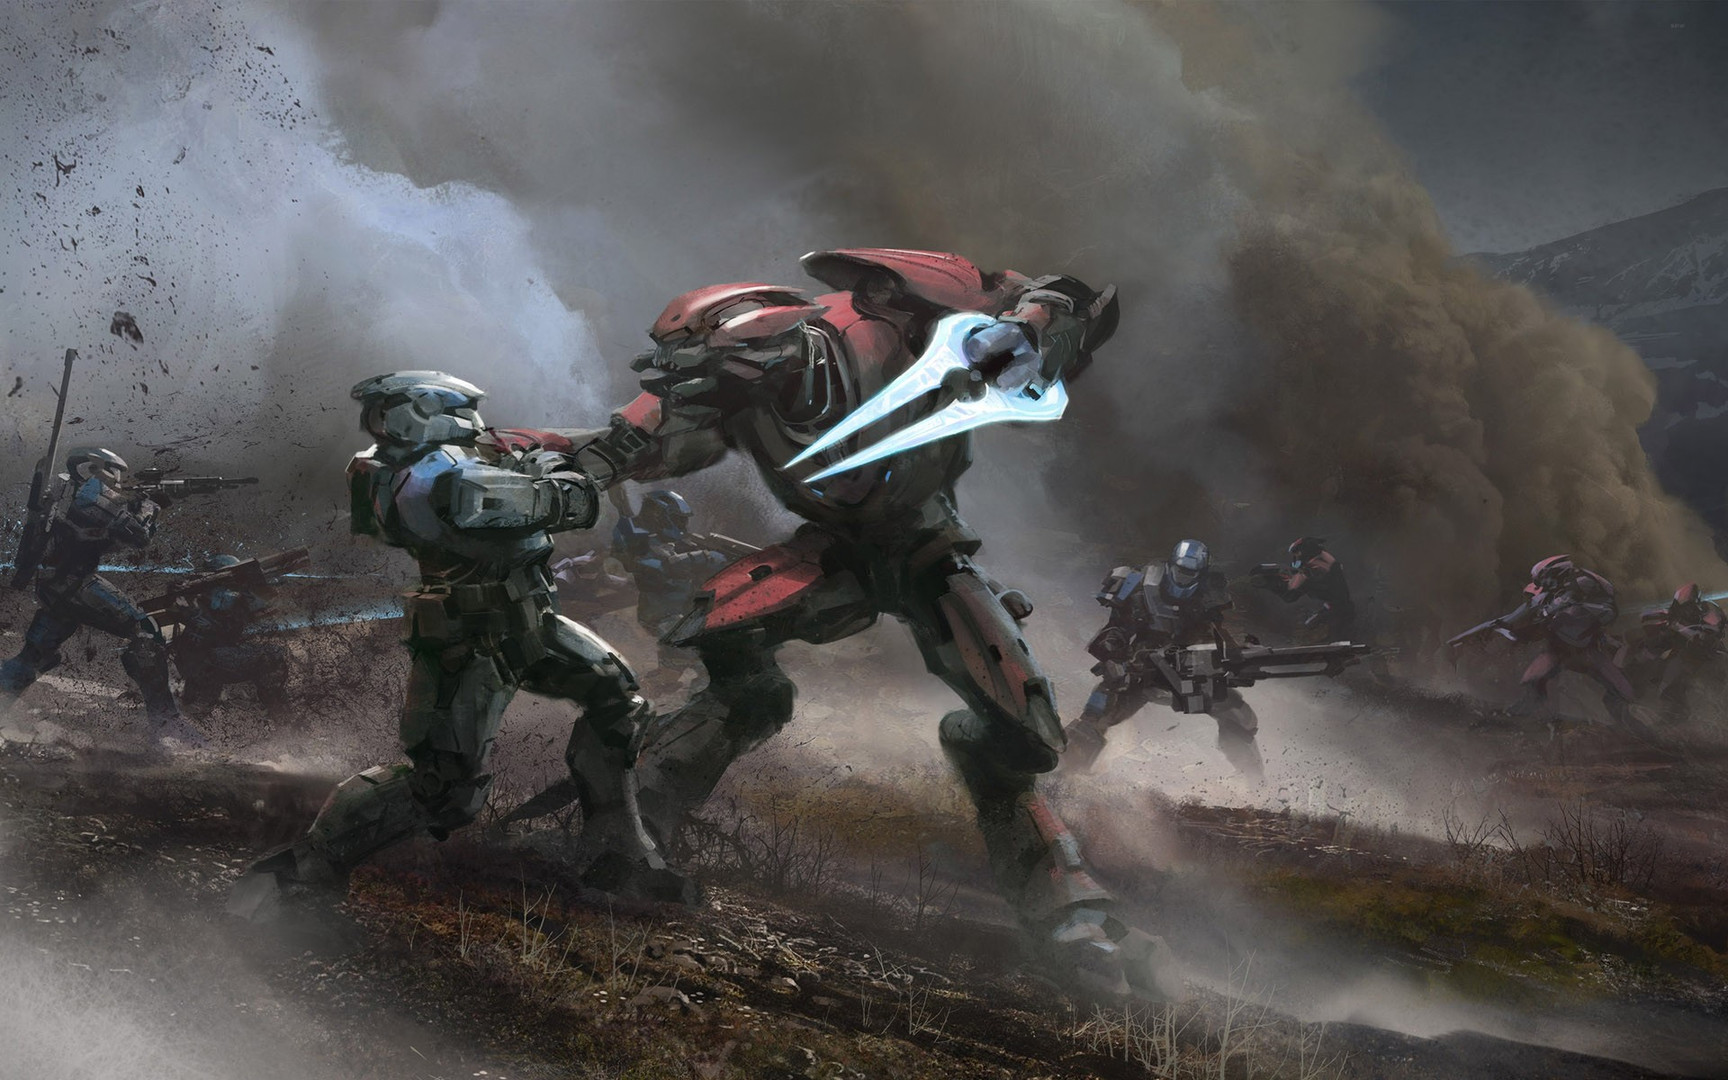 Related Pictures halo reach 1080p wallpaper halo reach 720p wallpaper 1728x1080